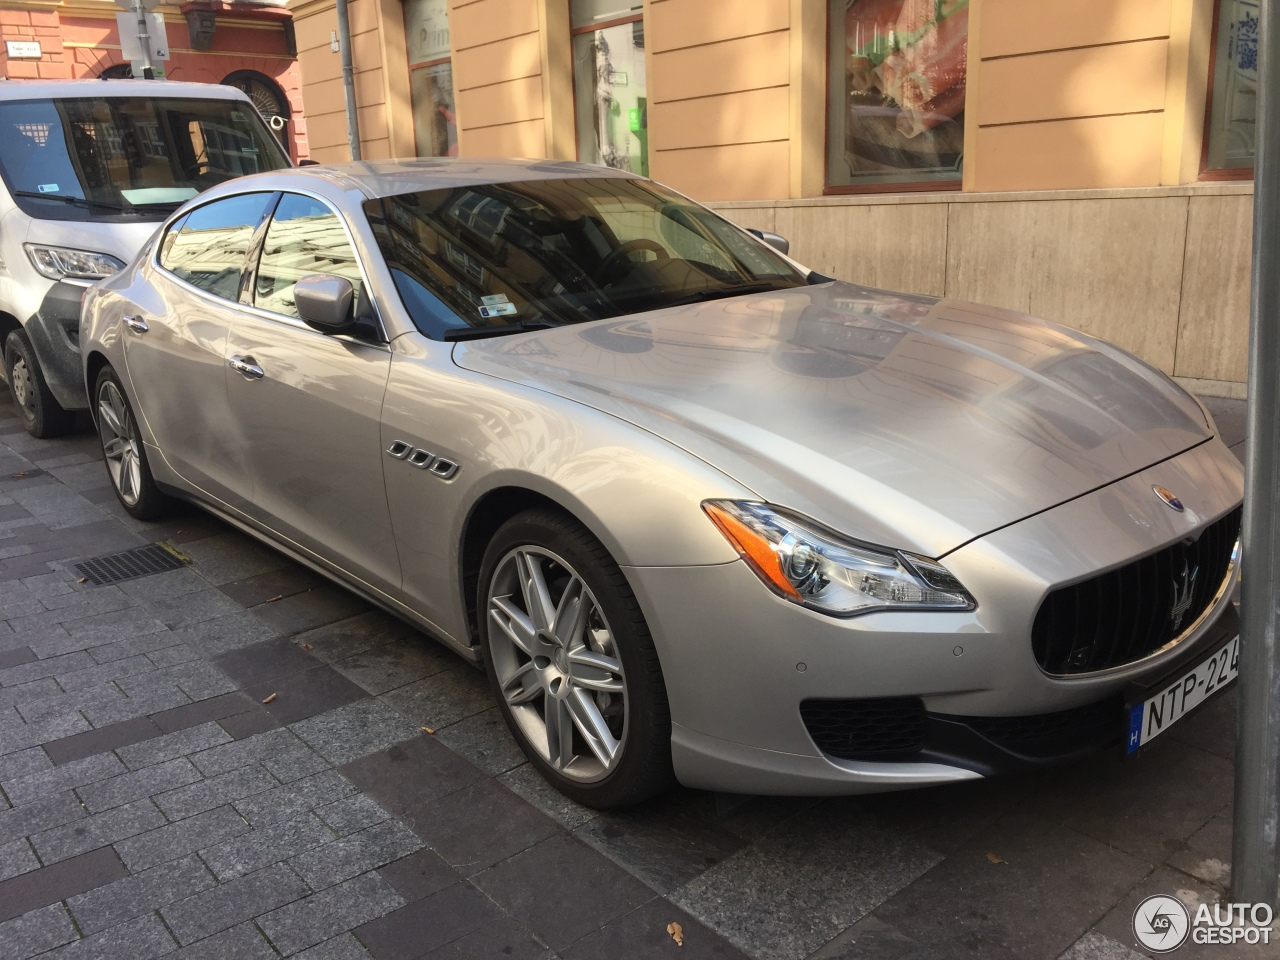 maserati quattroporte s q4 2013 2 october 2017 autogespot. Black Bedroom Furniture Sets. Home Design Ideas